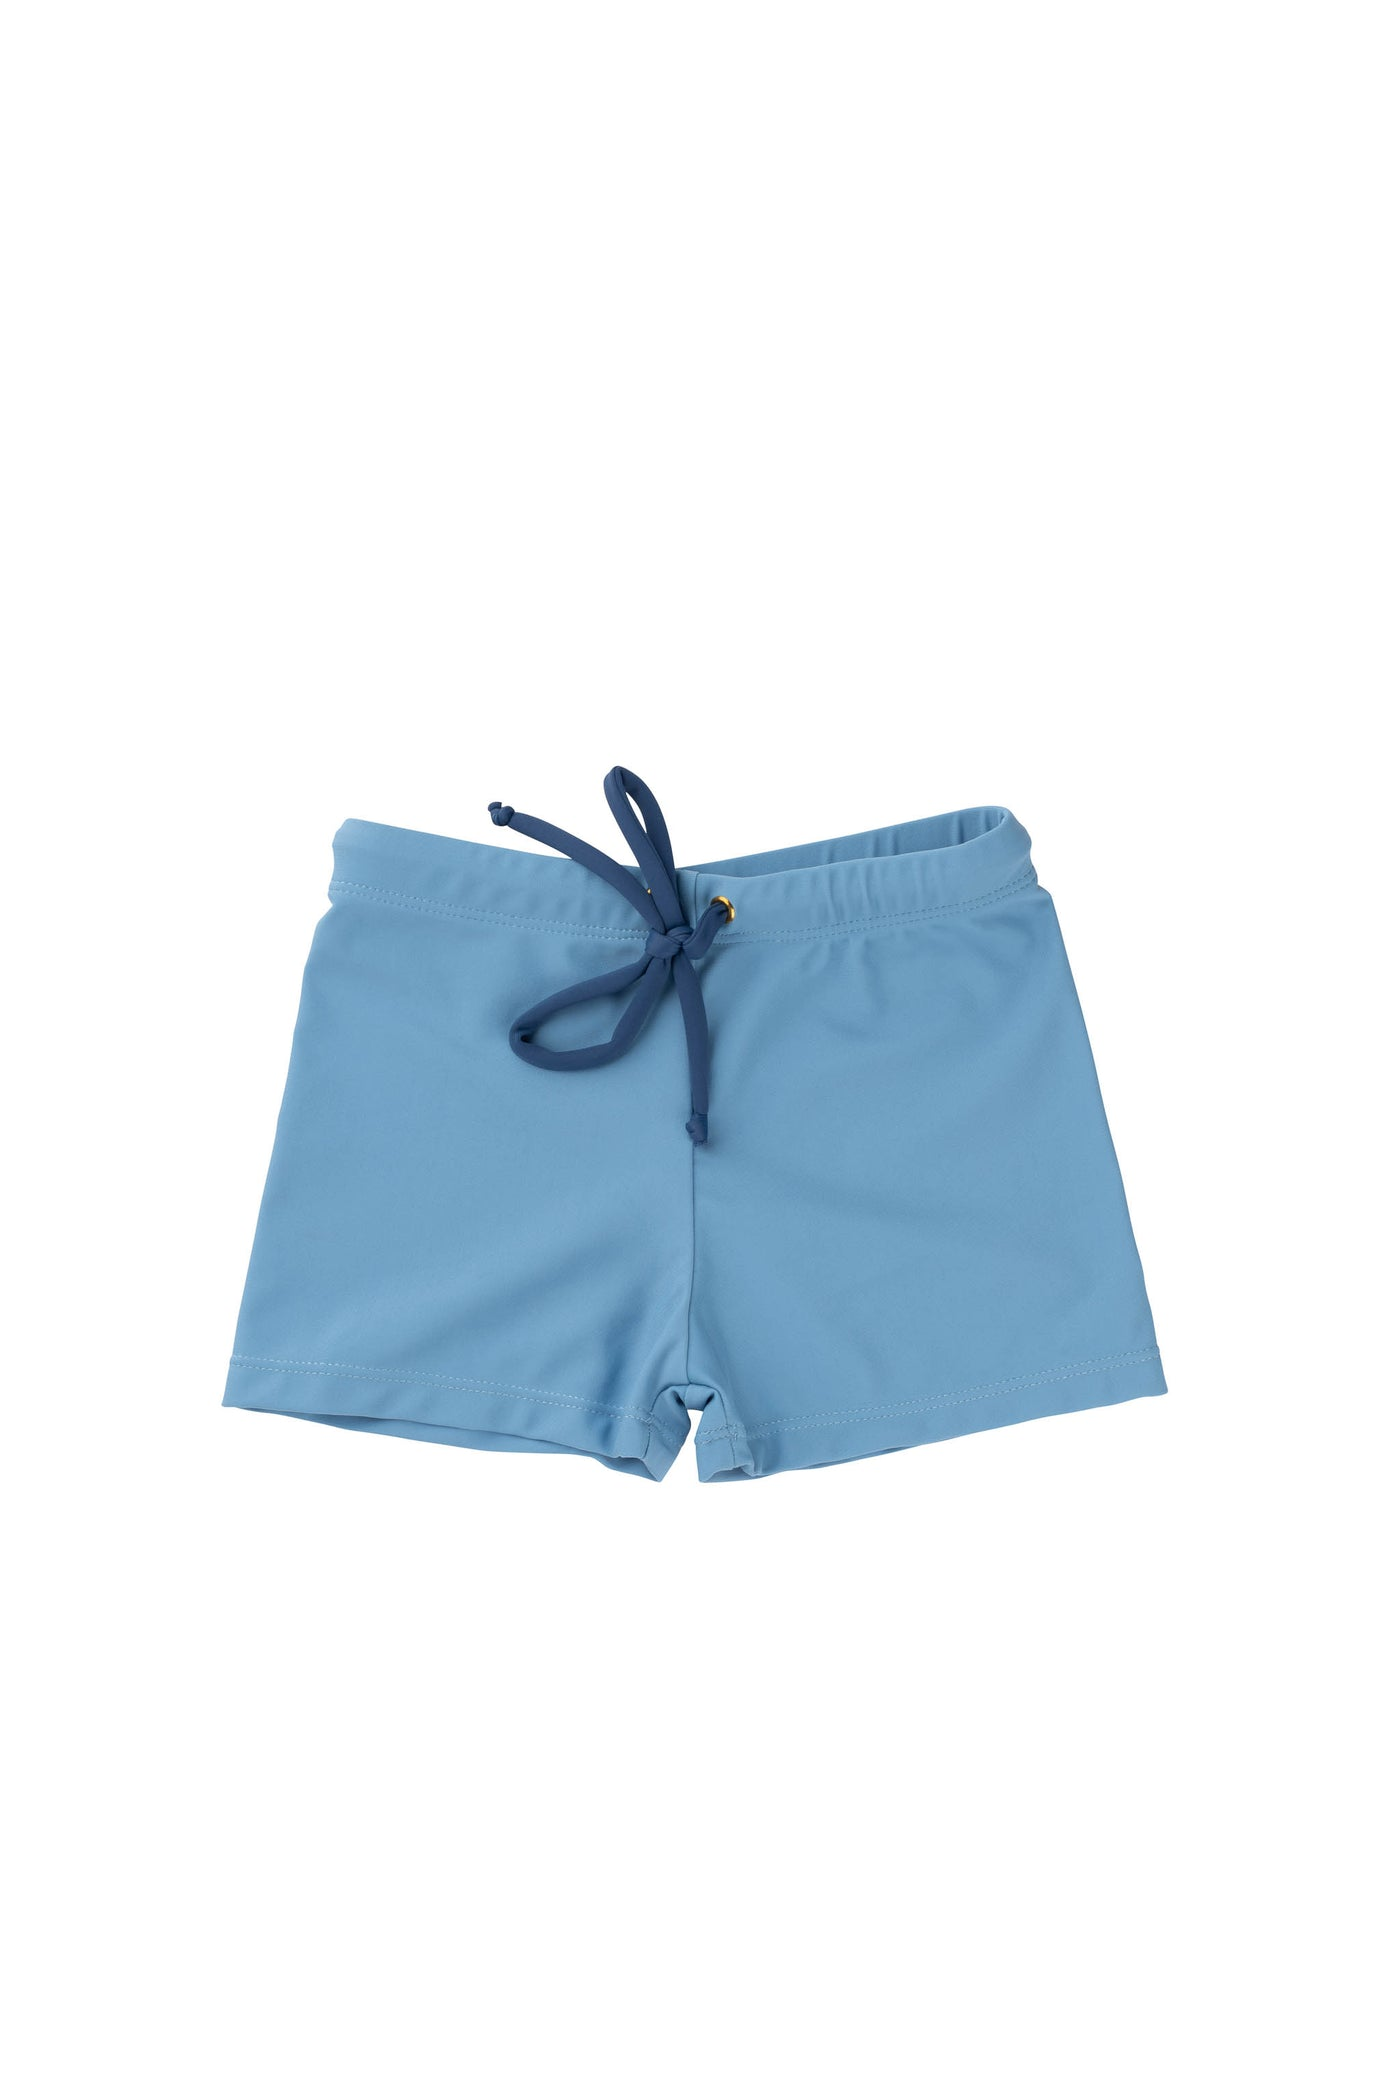 Etienne trunk - vento blue